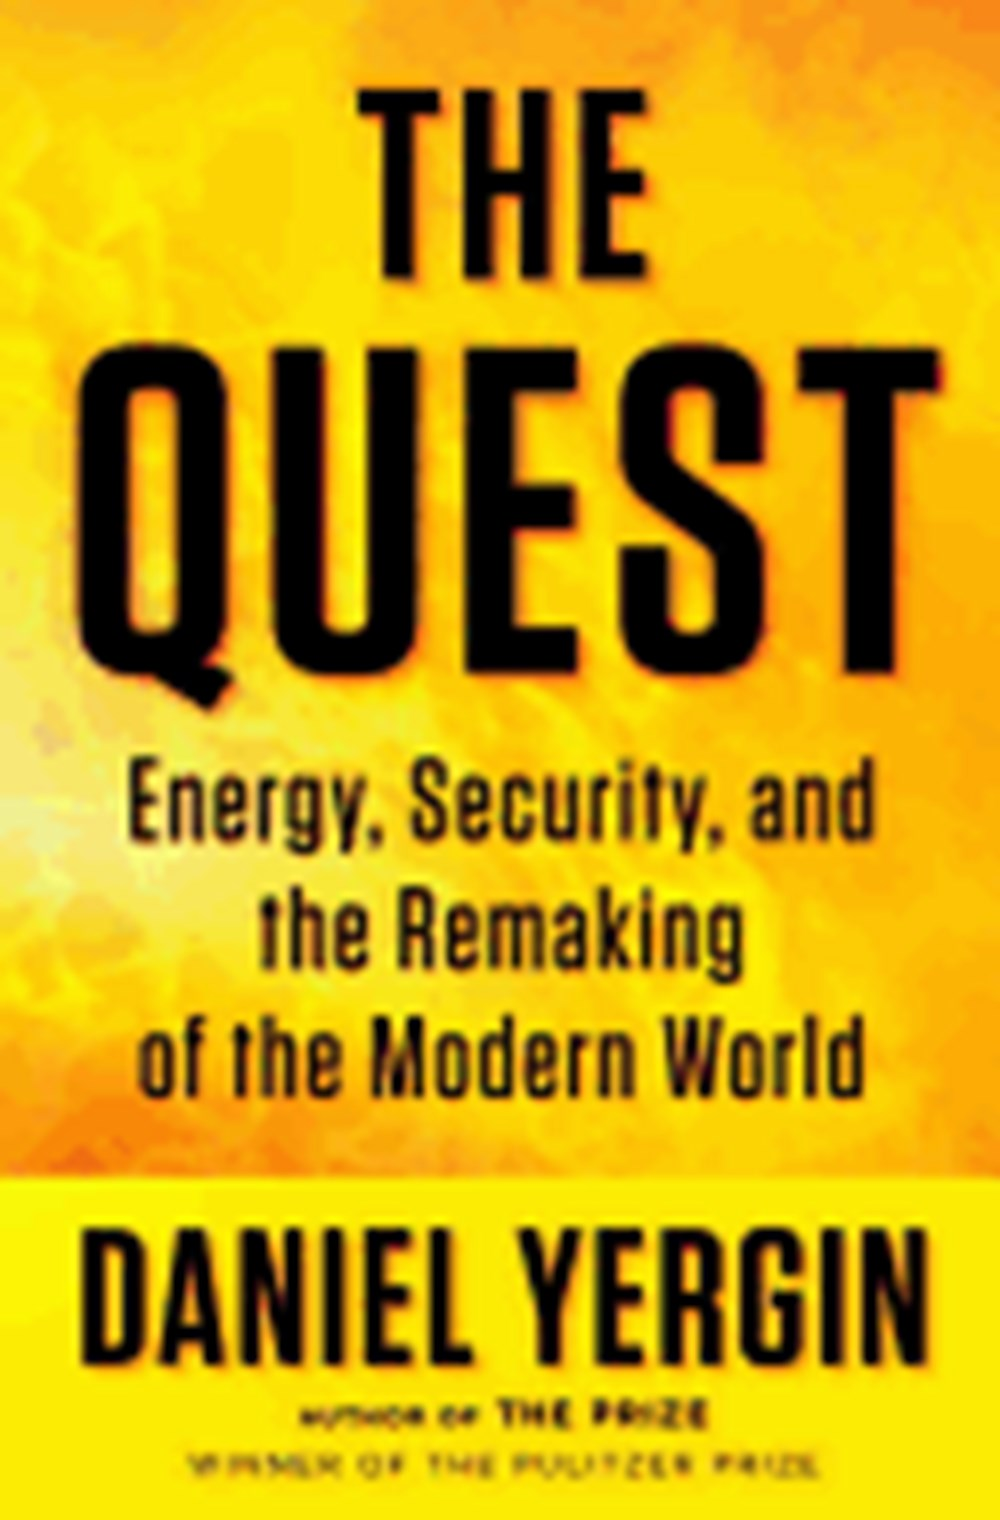 Quest Energy, Security, and the Remaking of the Modern World